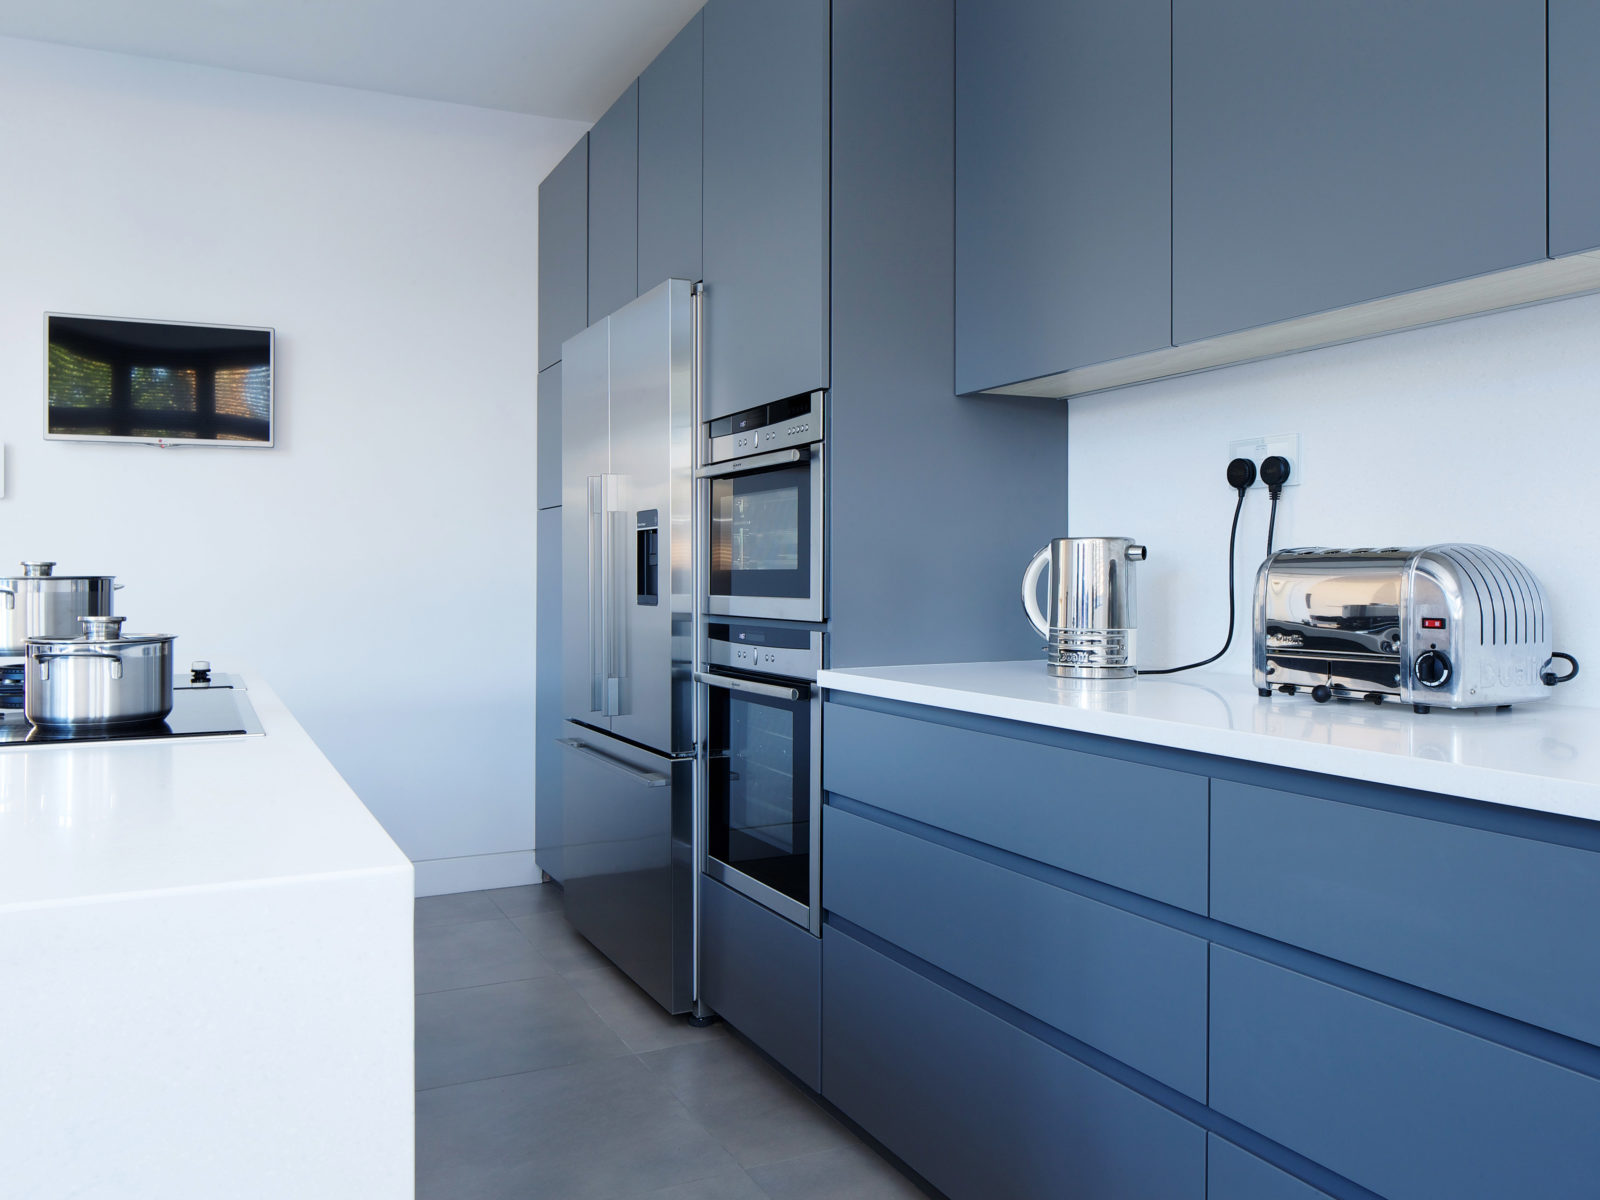 matt grey lacquered kitchen with long handleless drawers